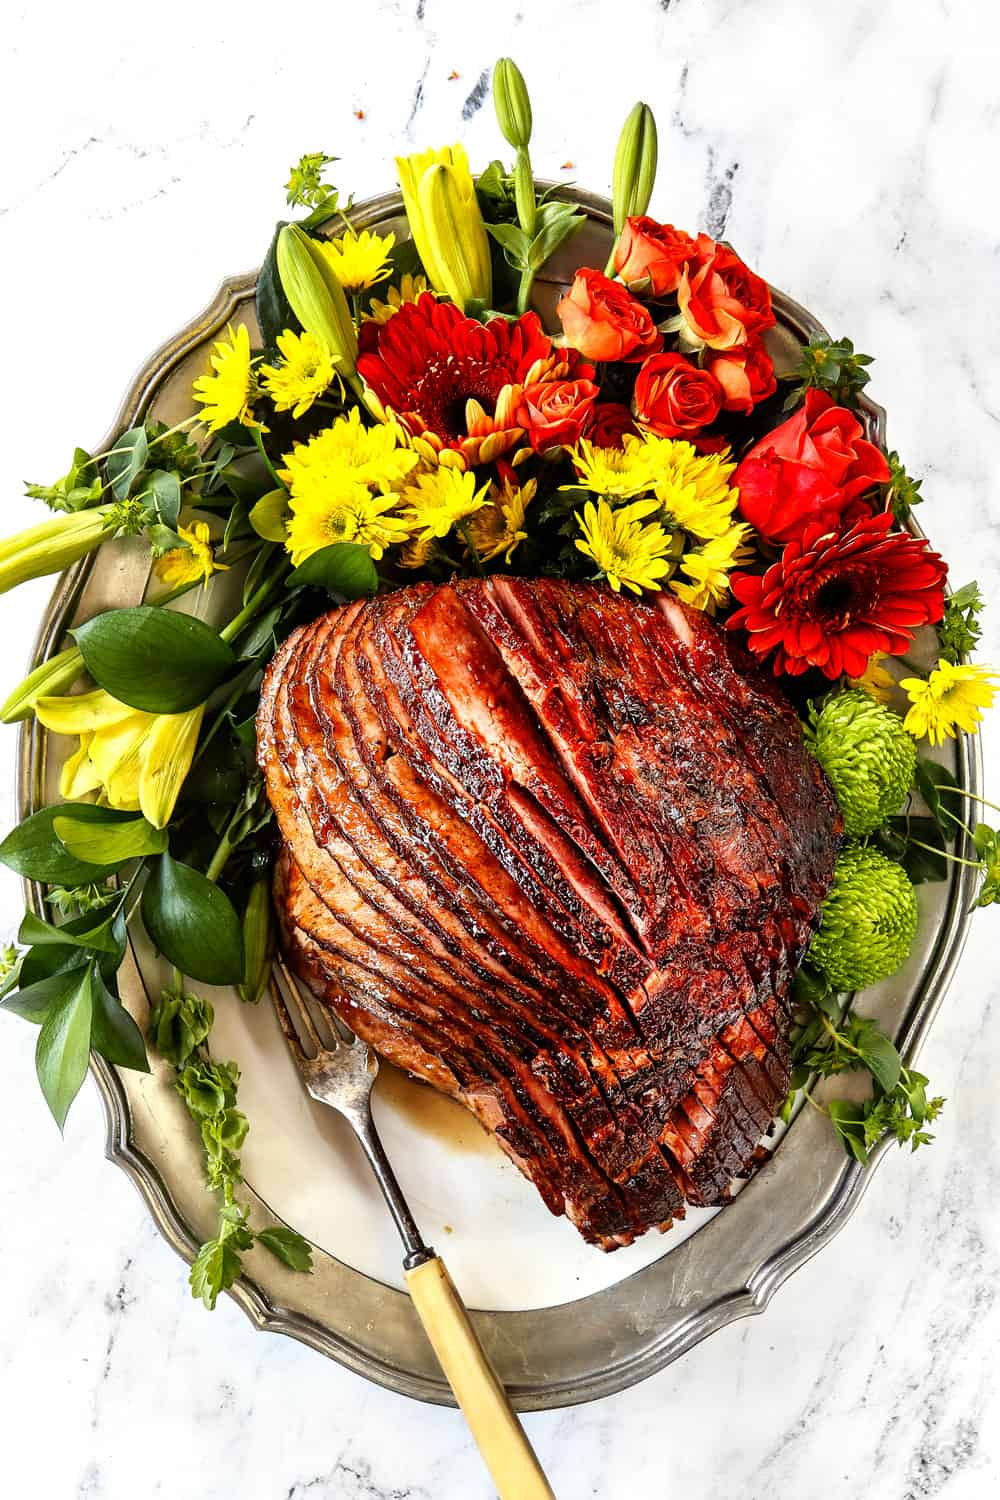 Ham glaze recipe with brown sugar and pineapple on a platter with leaves and flowers